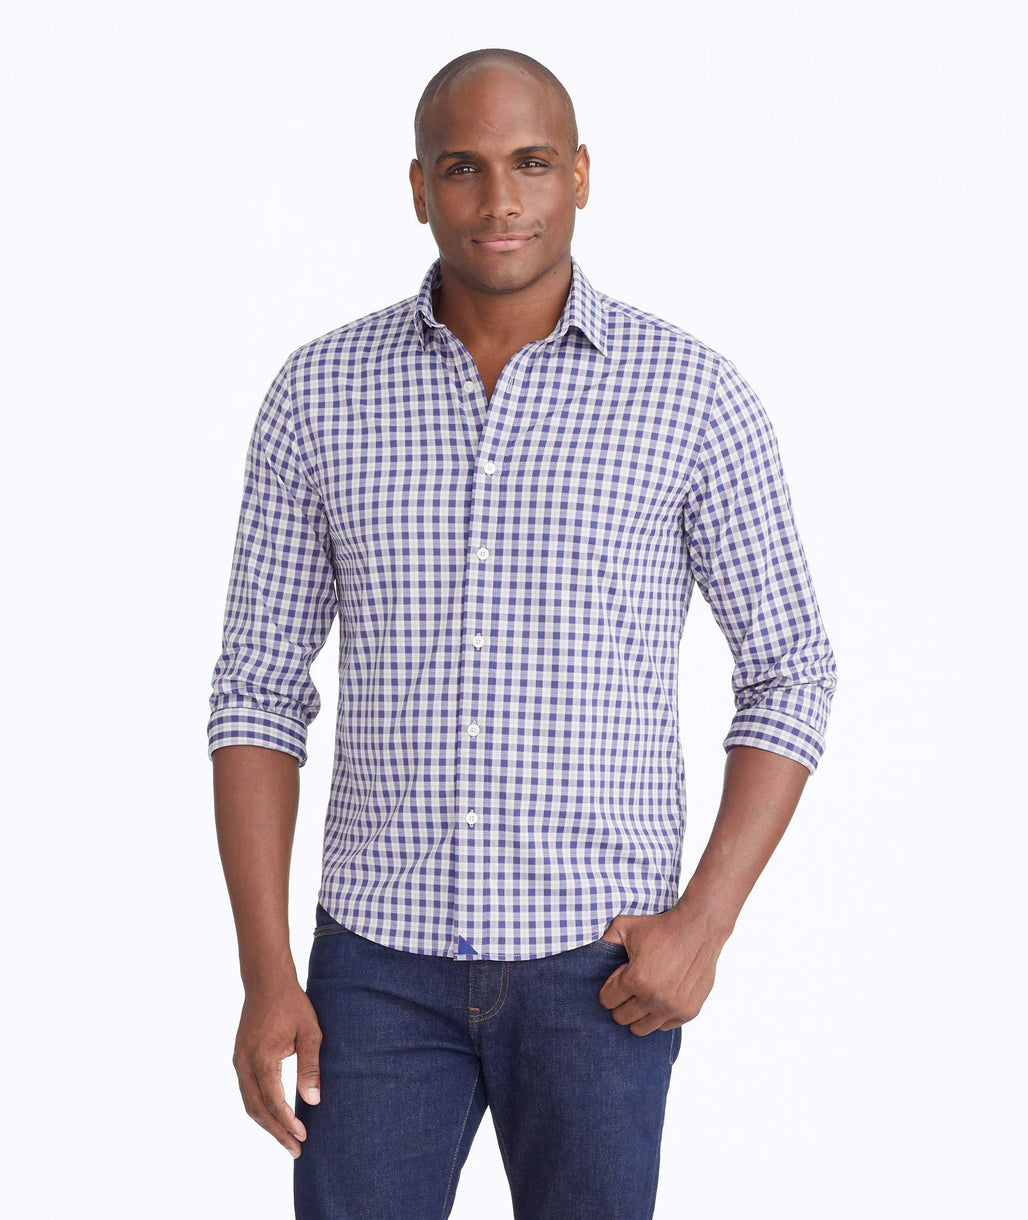 Model wearing a Tan Wrinkle-Free Performance Egravin Shirt